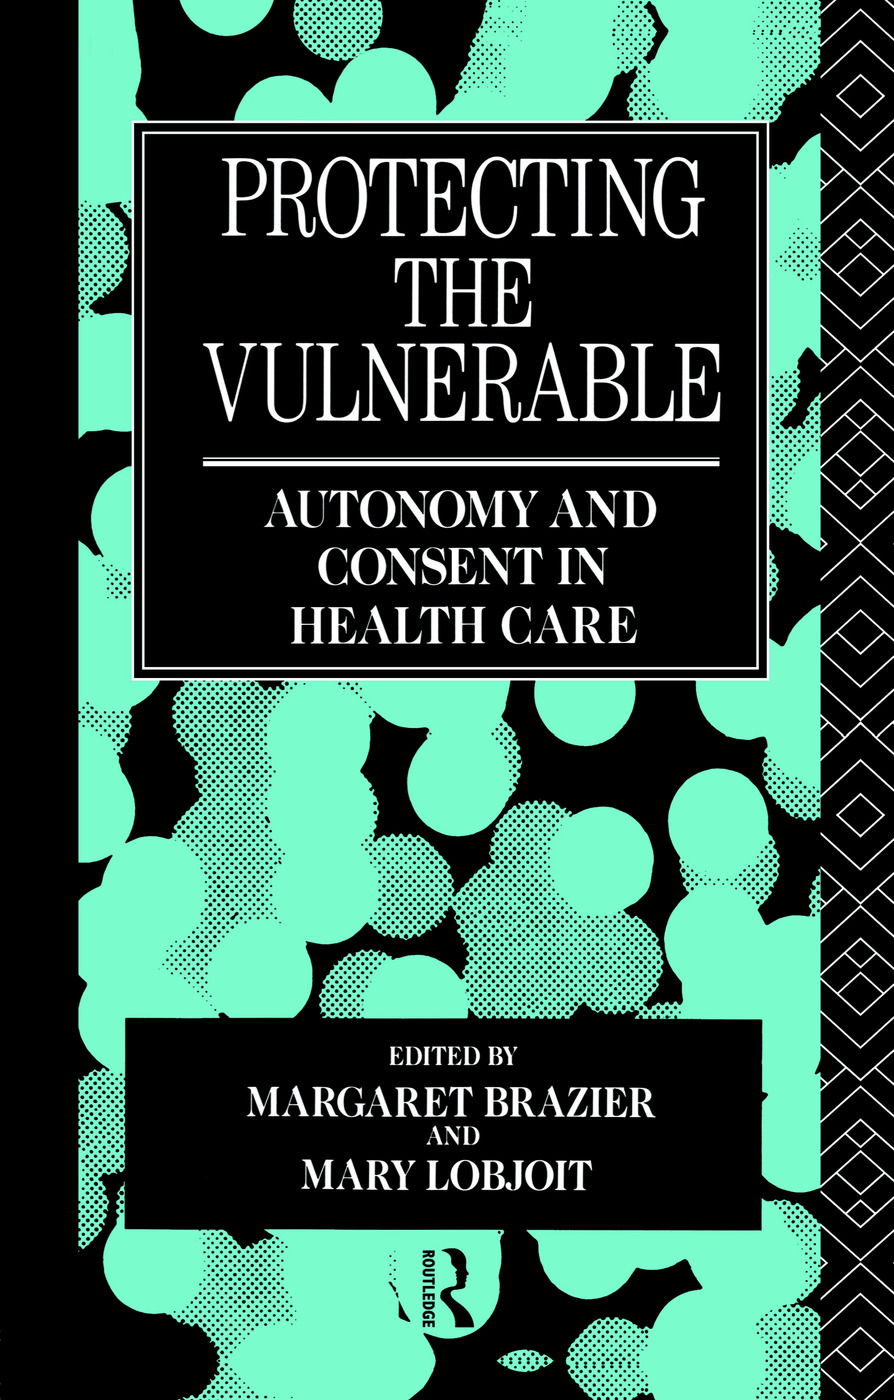 Protecting the Vulnerable: Autonomy and Consent in Health Care book cover